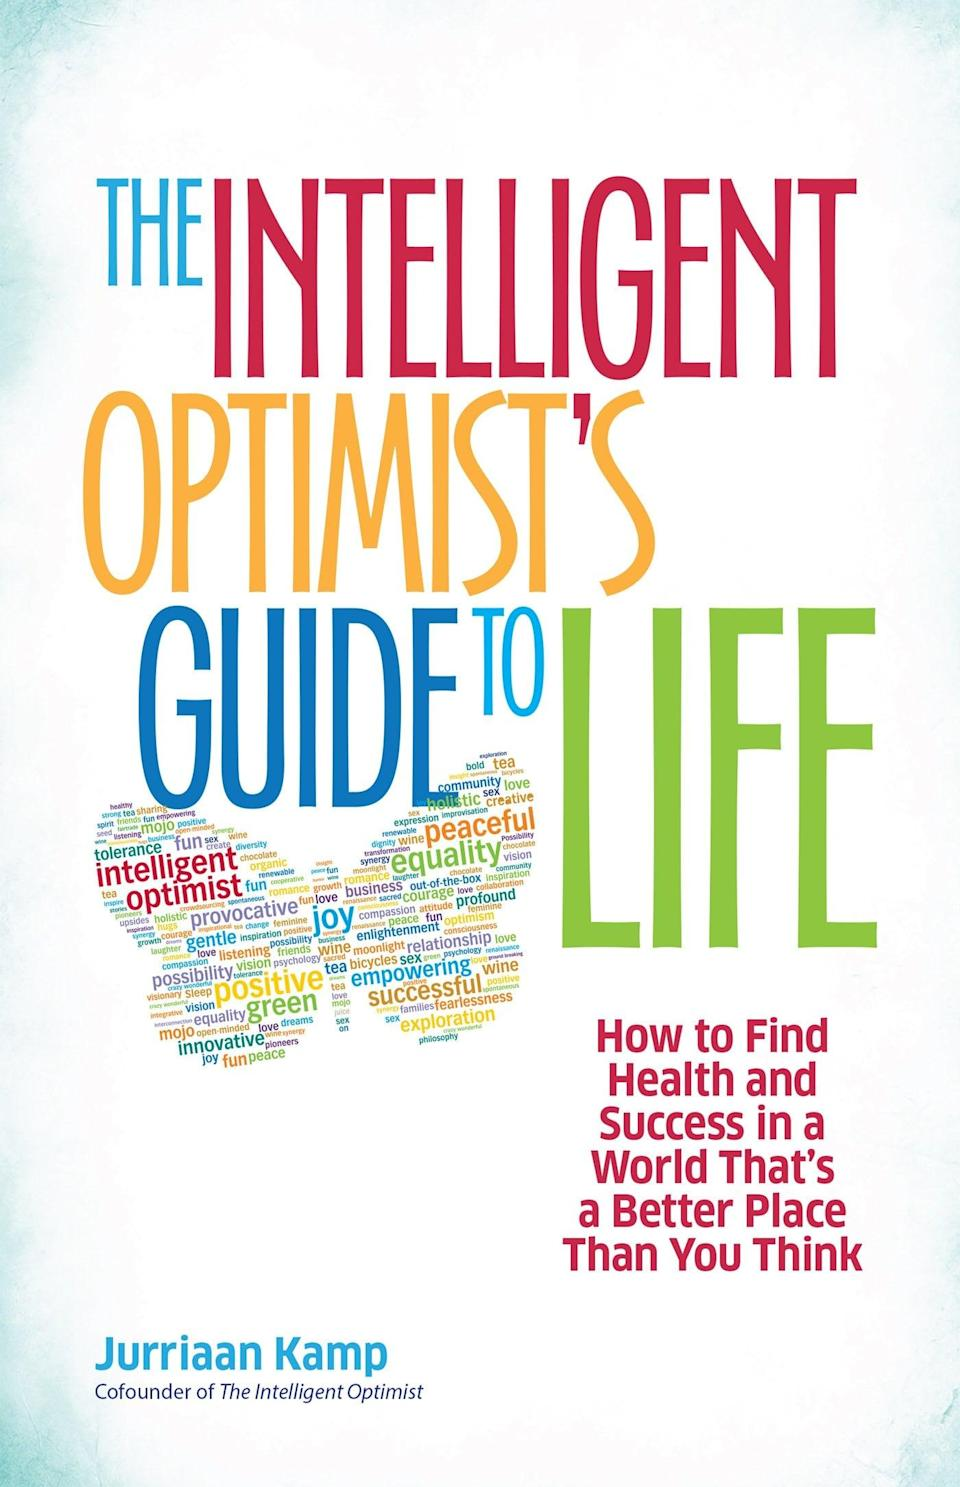 <p>It's hard to find happiness when the media is so focused on disasters, catastrophes, and conflict. <span>The Intelligent Optimist's Guide to Life</span> details why optimism is good for both the mind and body, plus how to tune in to your natural optimistic self. </p>